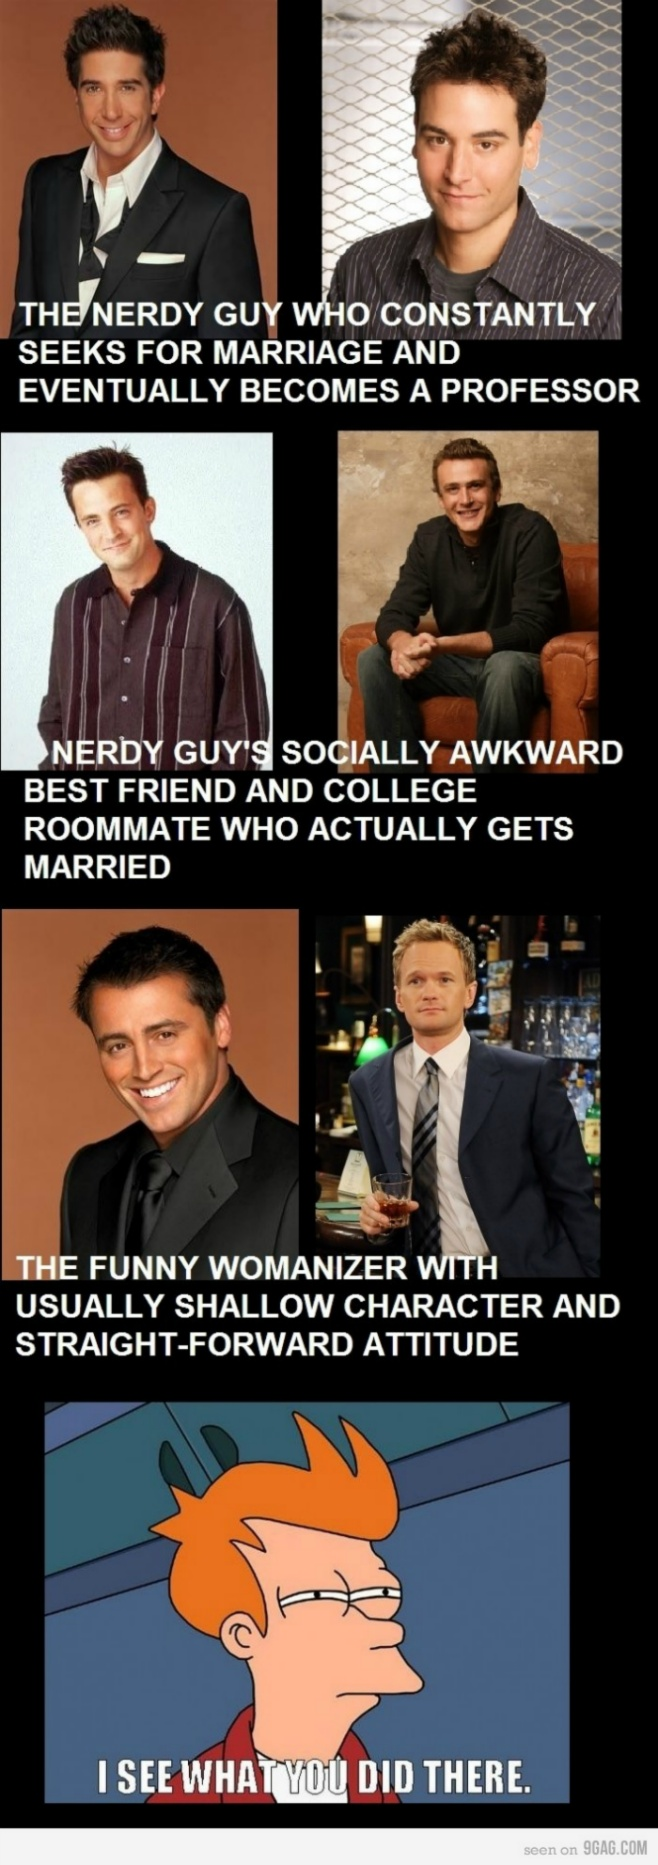 Friends Or How I Met Your Mother Yahoo : Similarity between friends and how i met your mother buz